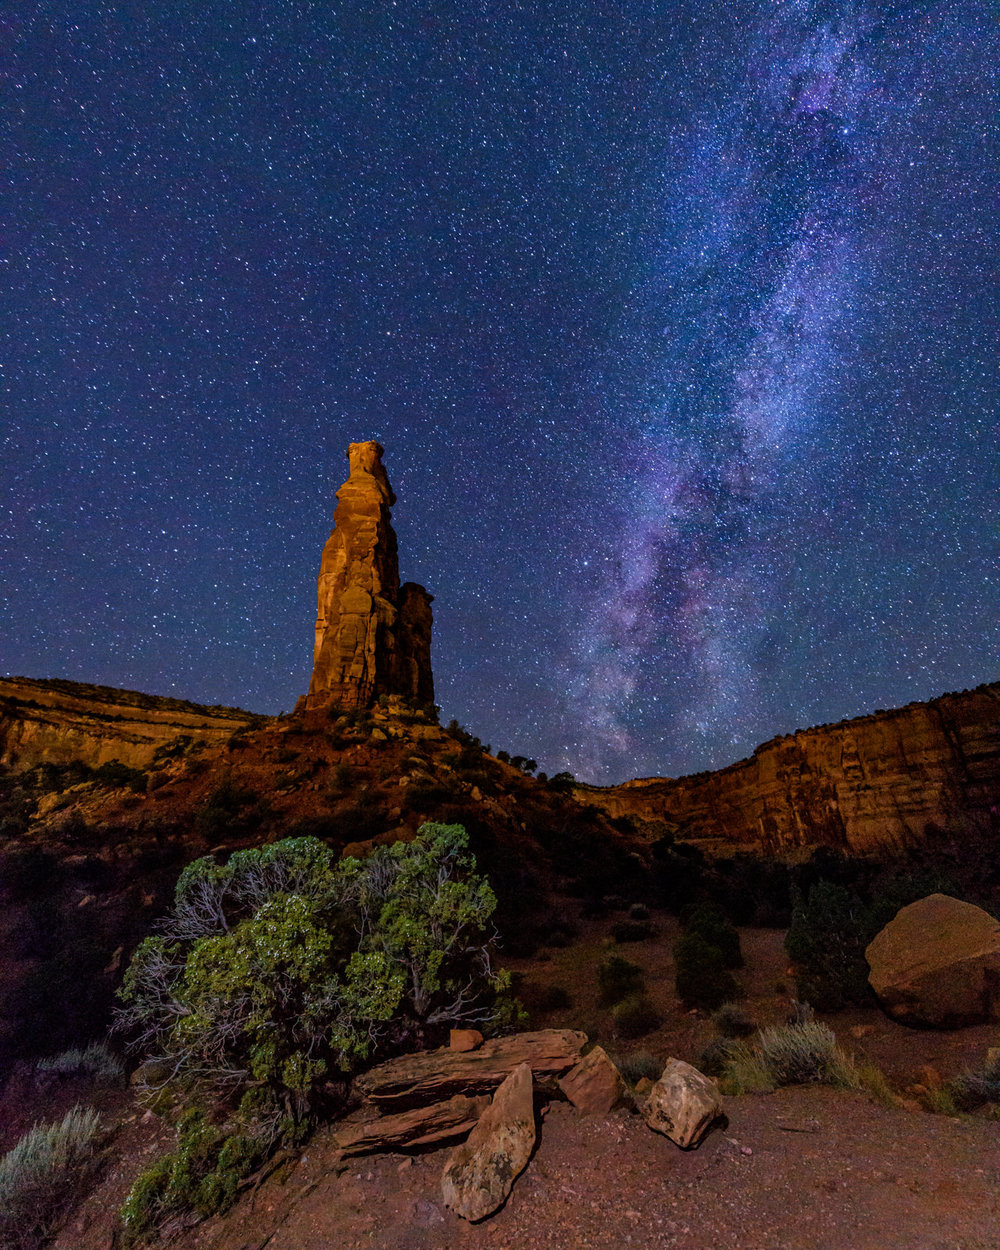 Independence Monument and the Milky Way